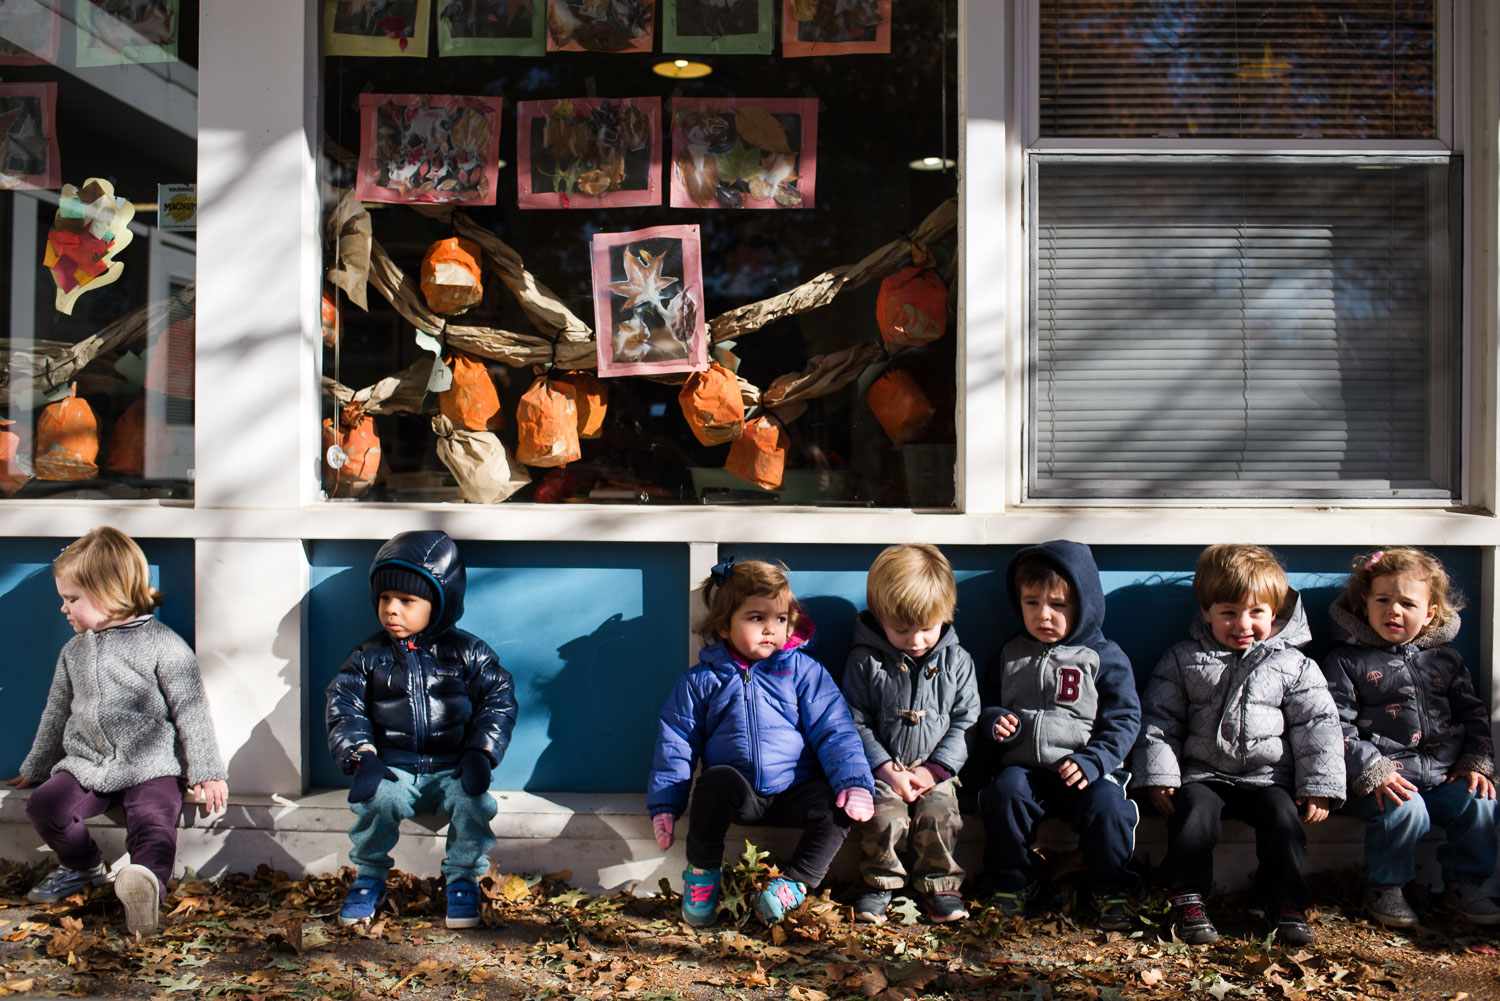 Kids lined up after recess at nursery school.